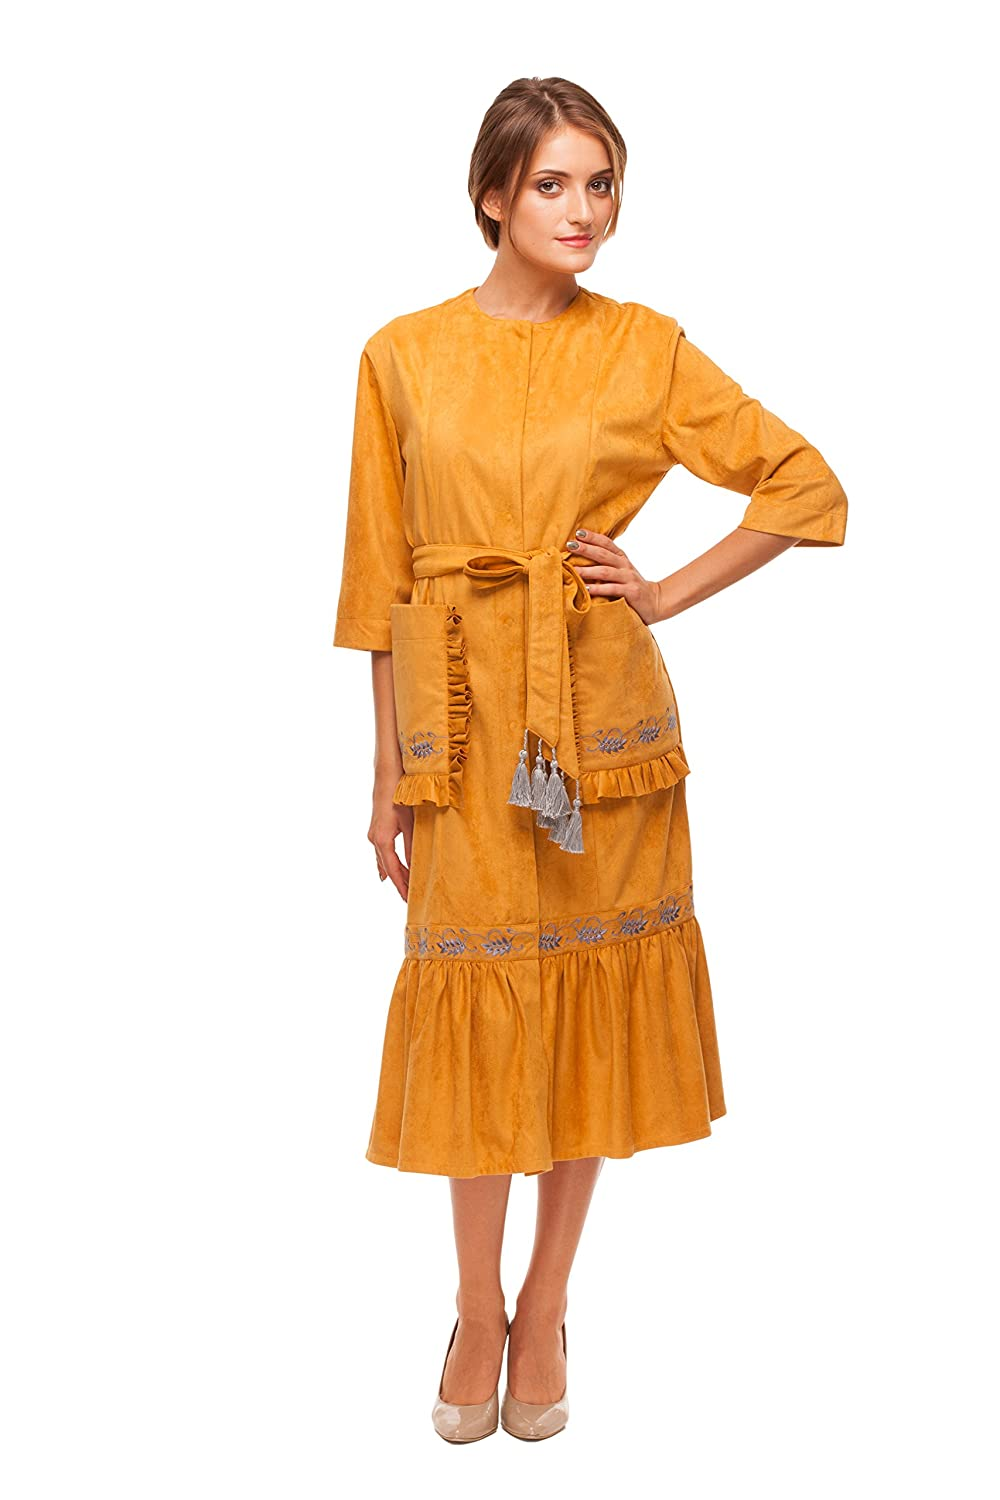 Embroidered Ocher Woman Trench-Dress Spikelets. Ukrainian Embroidered Dress